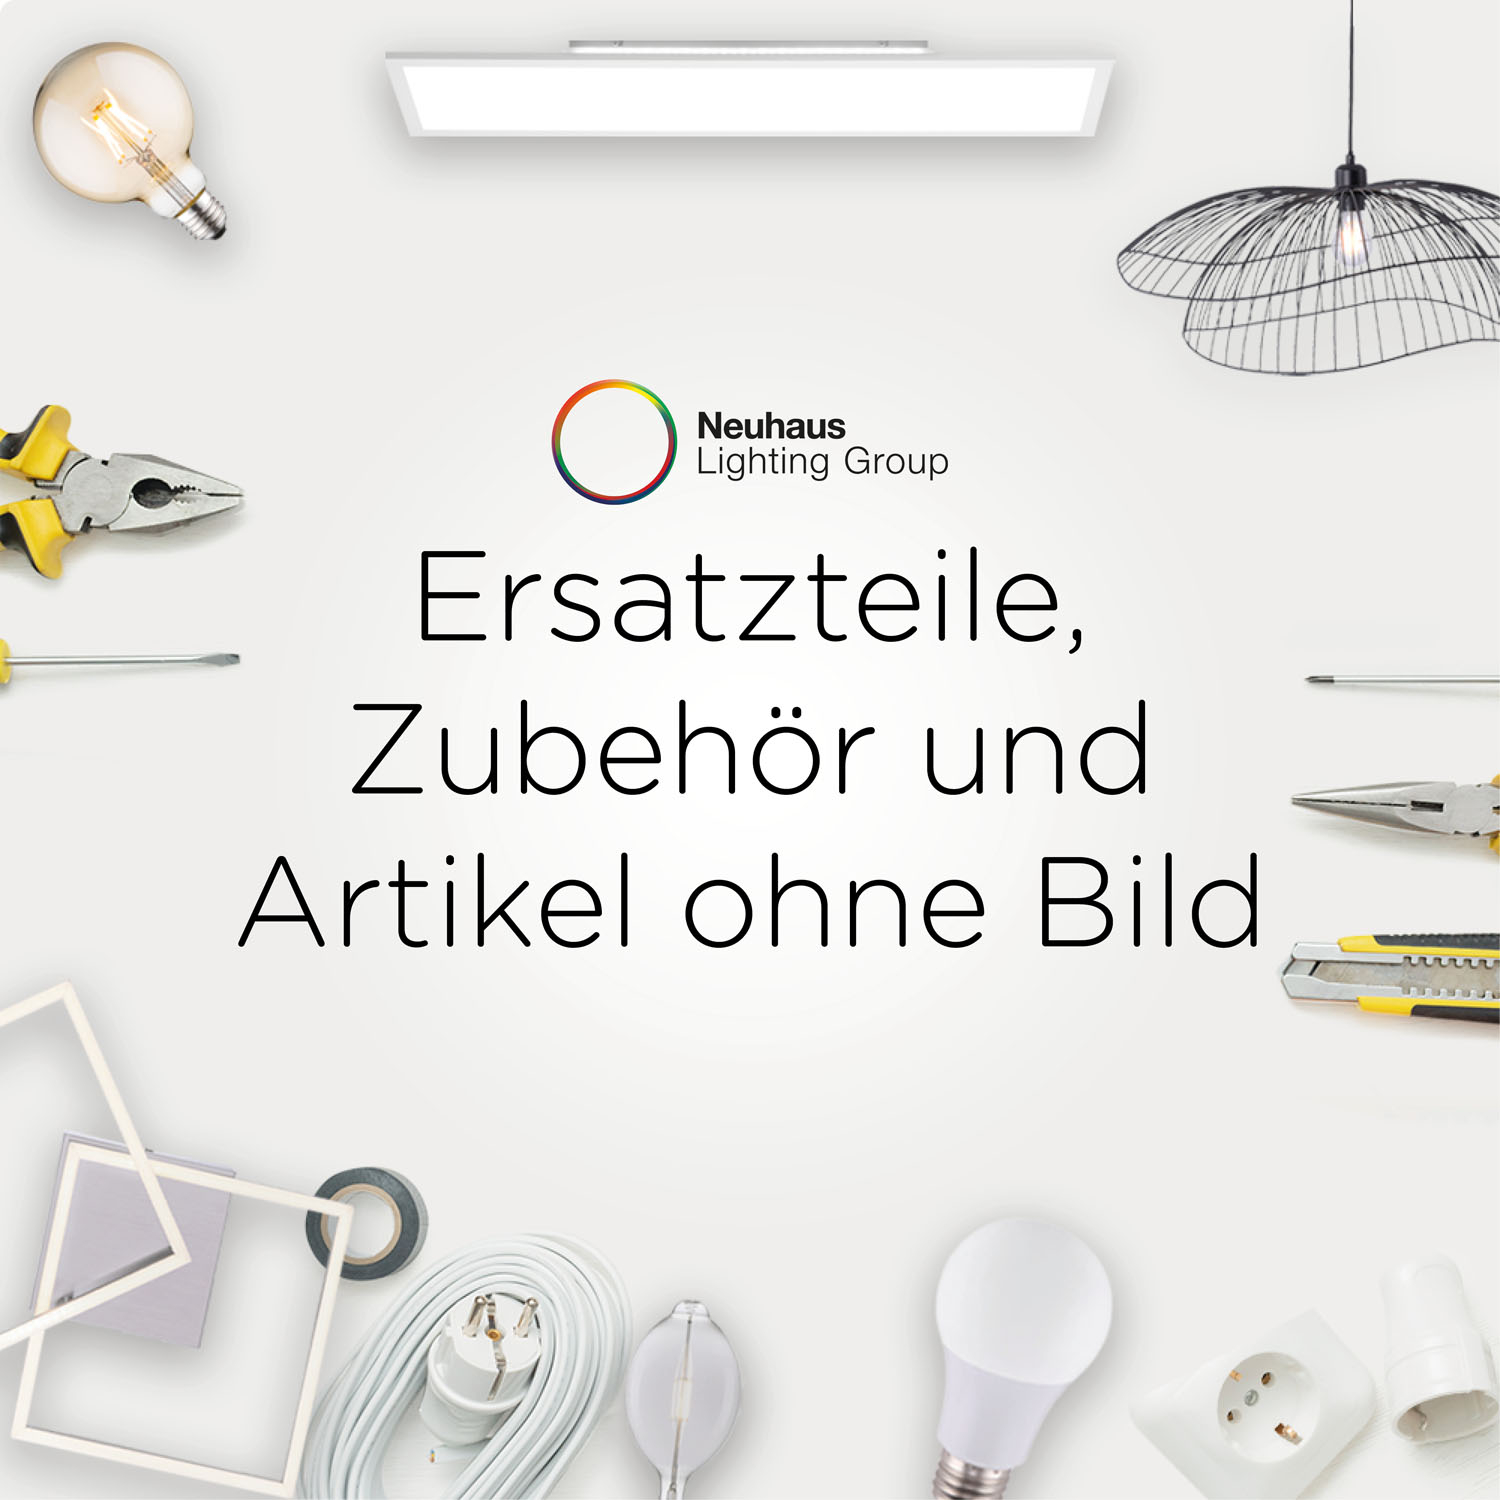 LED Stehleuchte,Smart-Home für Zigbee Gateway